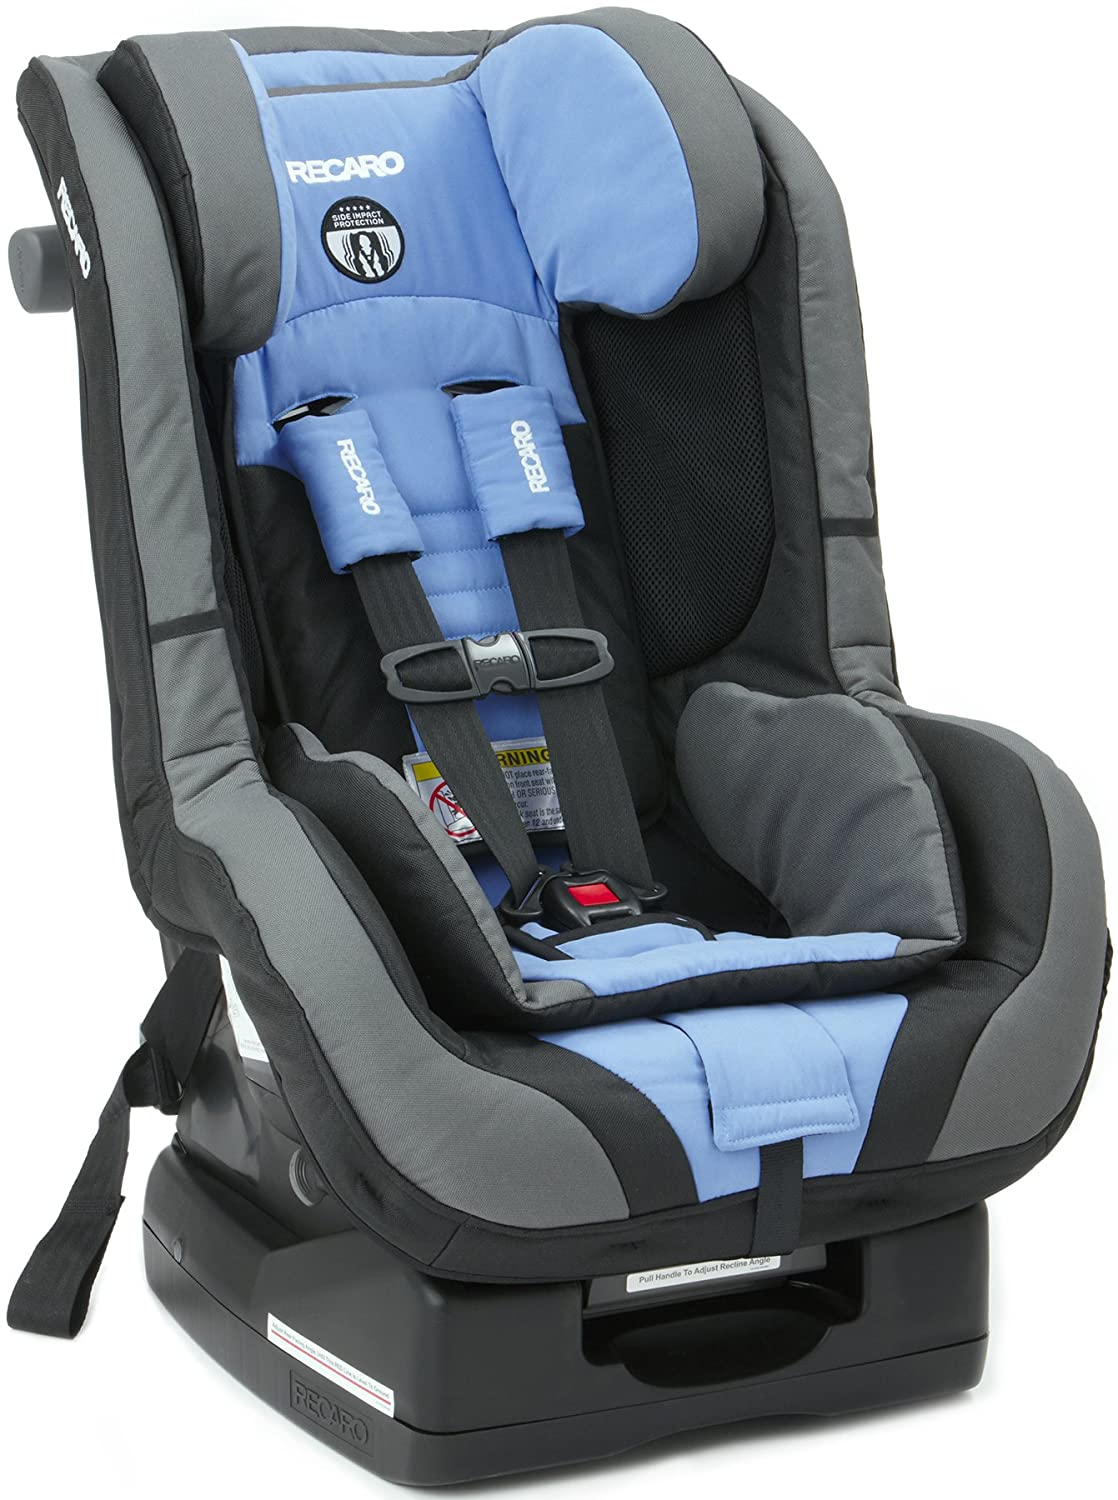 Get a $60 Amazon Gift Card With the Purchase of a Select RECARO Convertible Car Seat